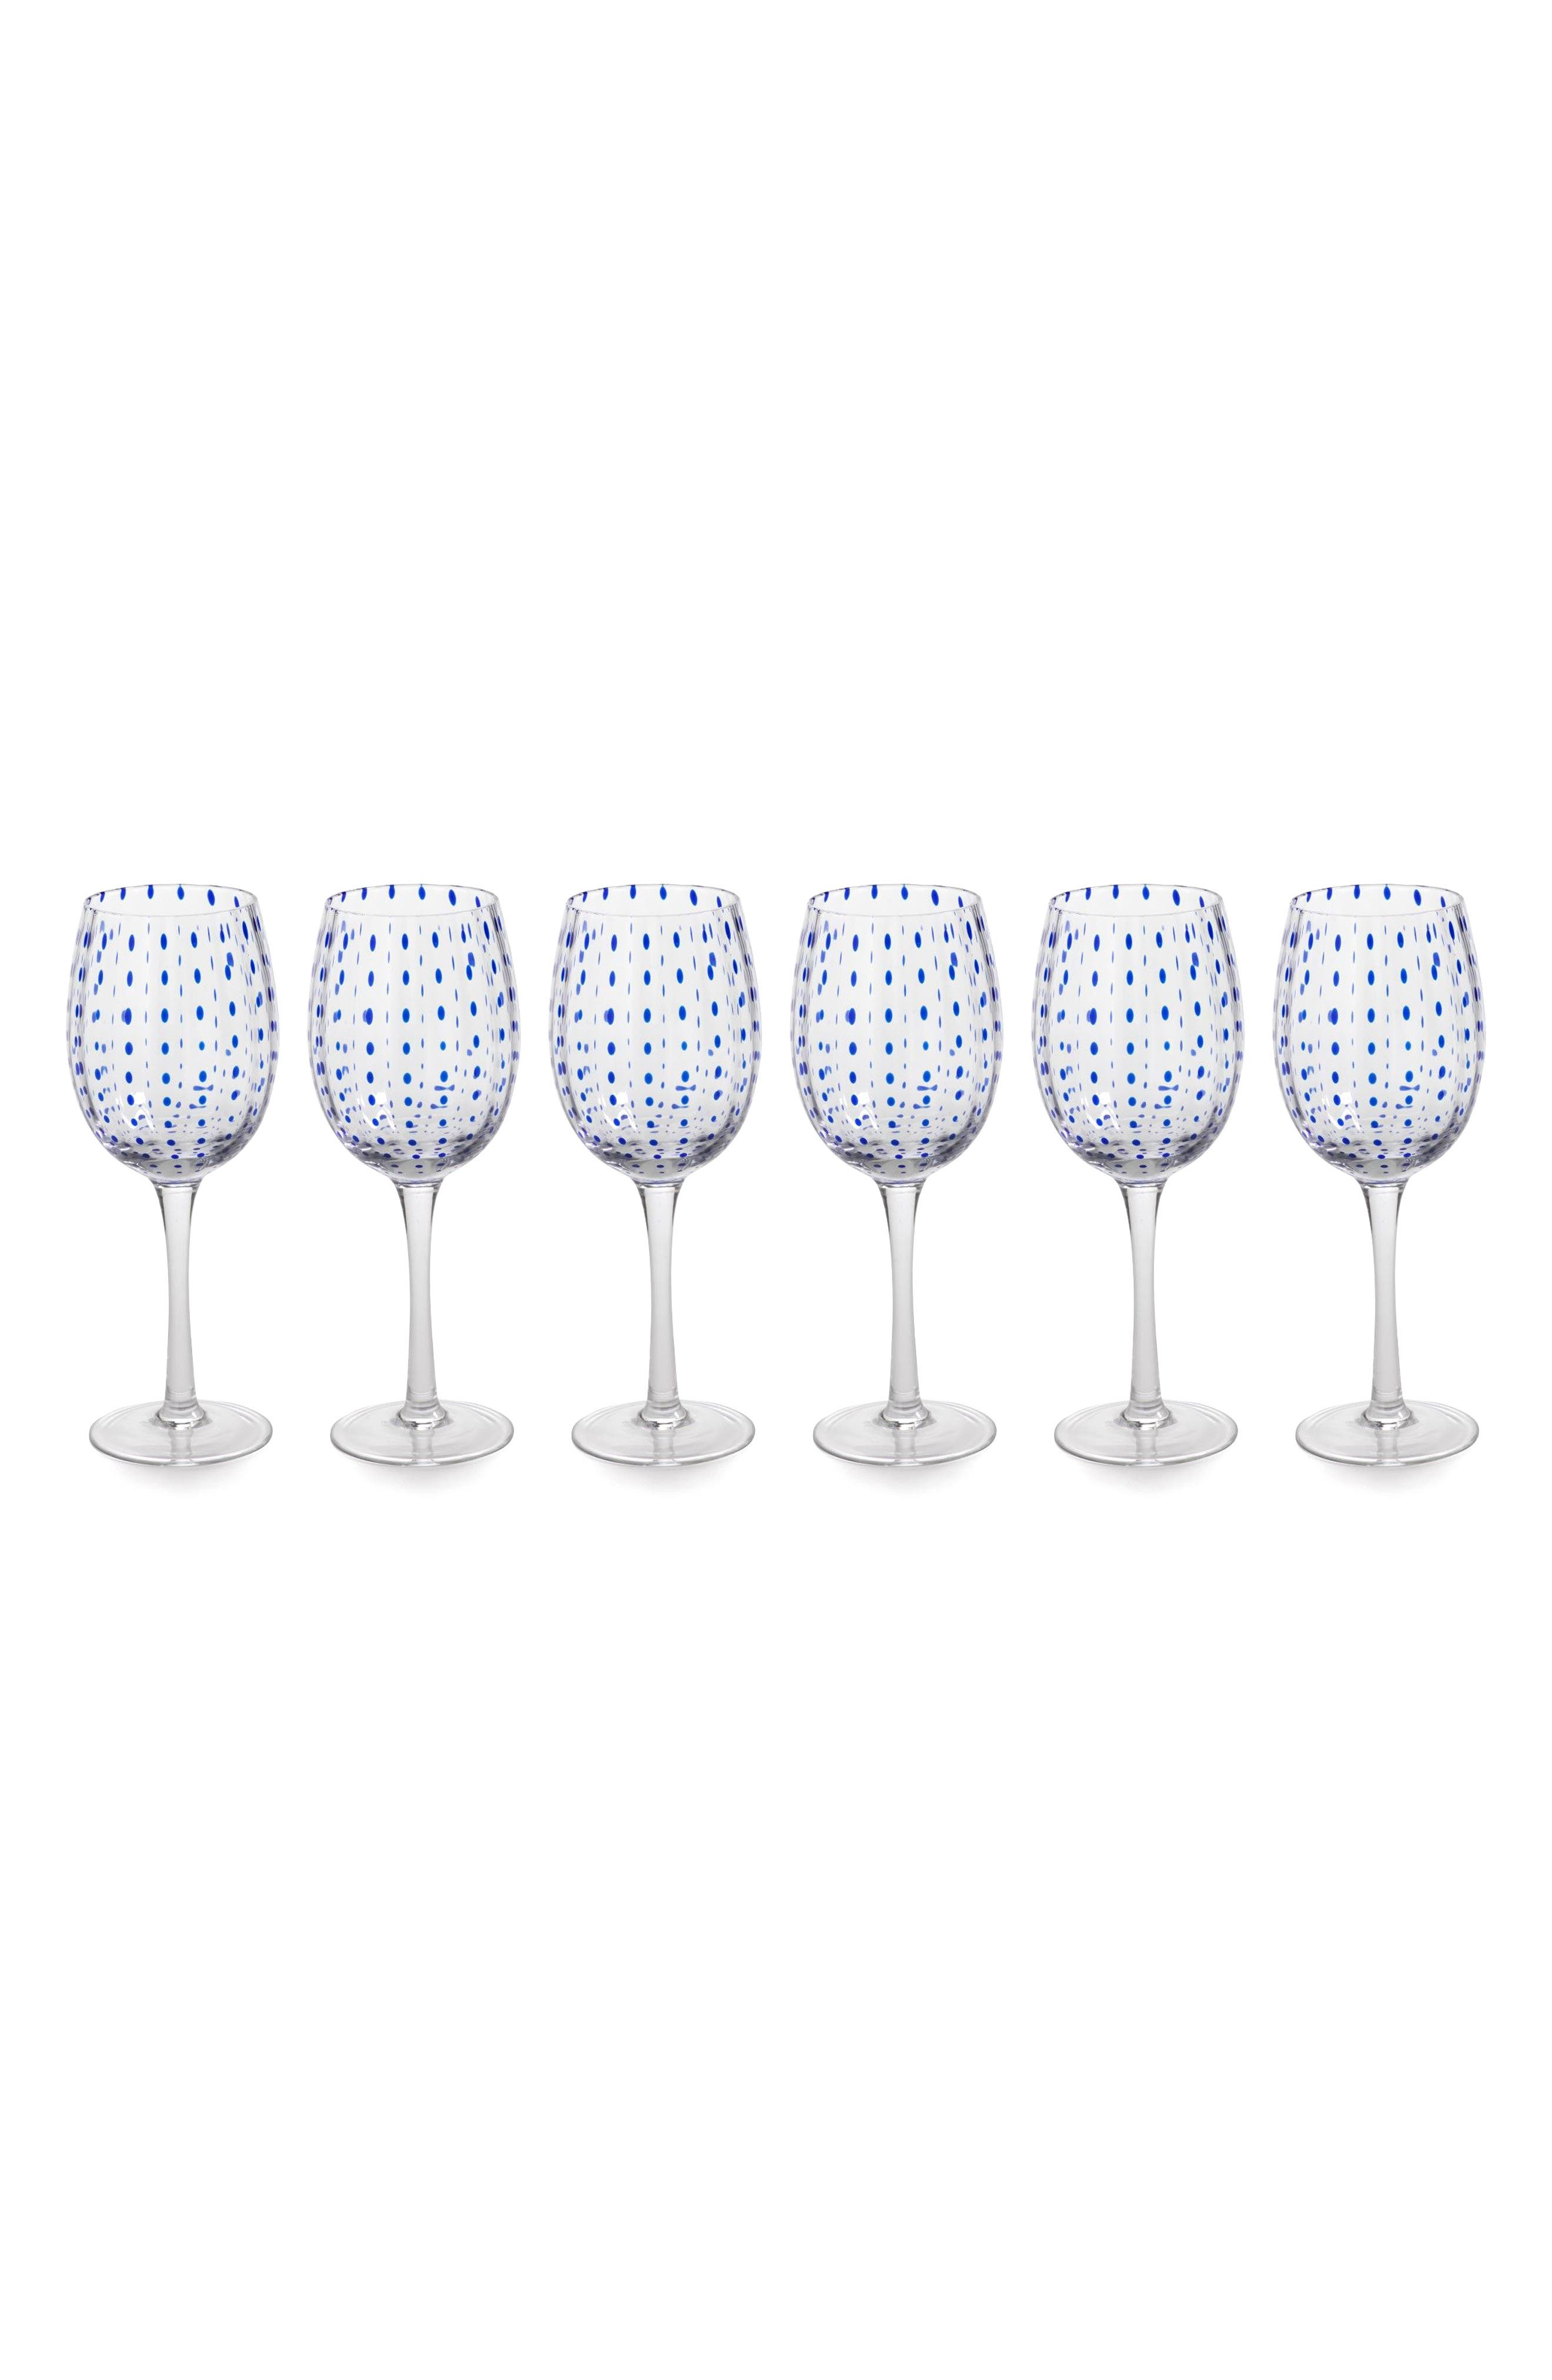 Alternate Image 1 Selected - Zodax Mavi Set of 6 Wine Glasses